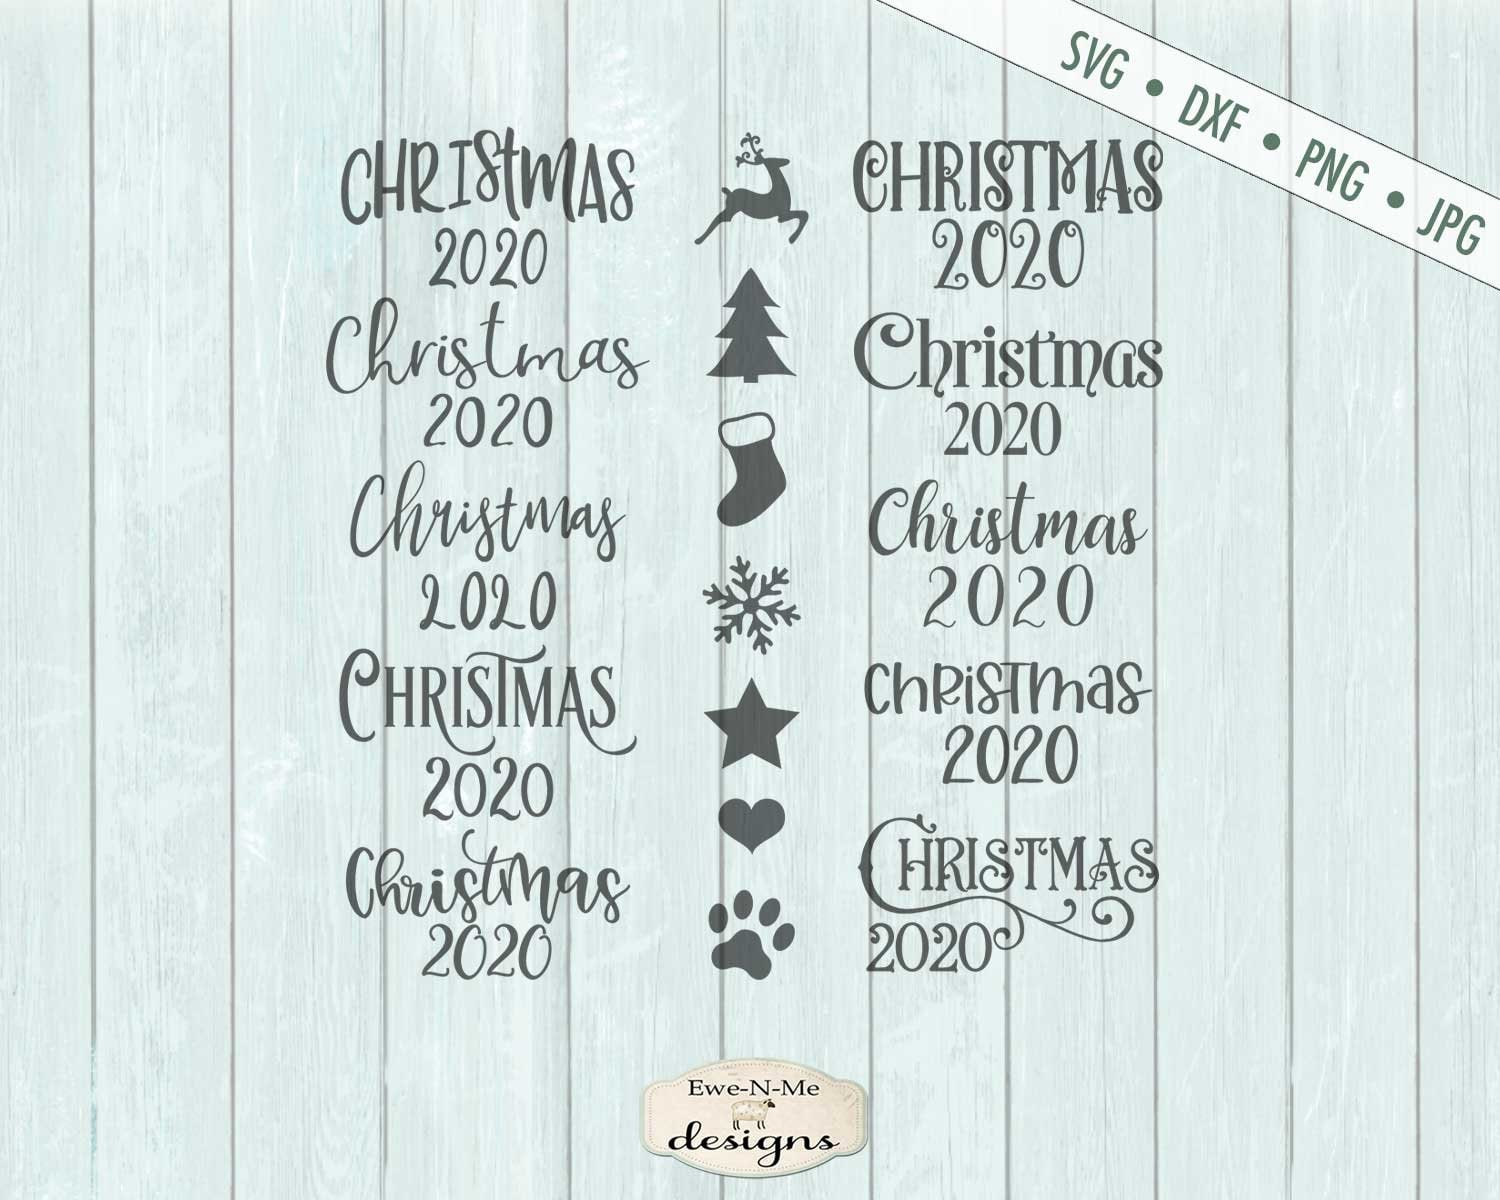 christmas svg christmas 2020 svg christmas icons svg holiday svg ornament svg files commercial use svg dxf png jpg christmas svg christmas 2020 svg